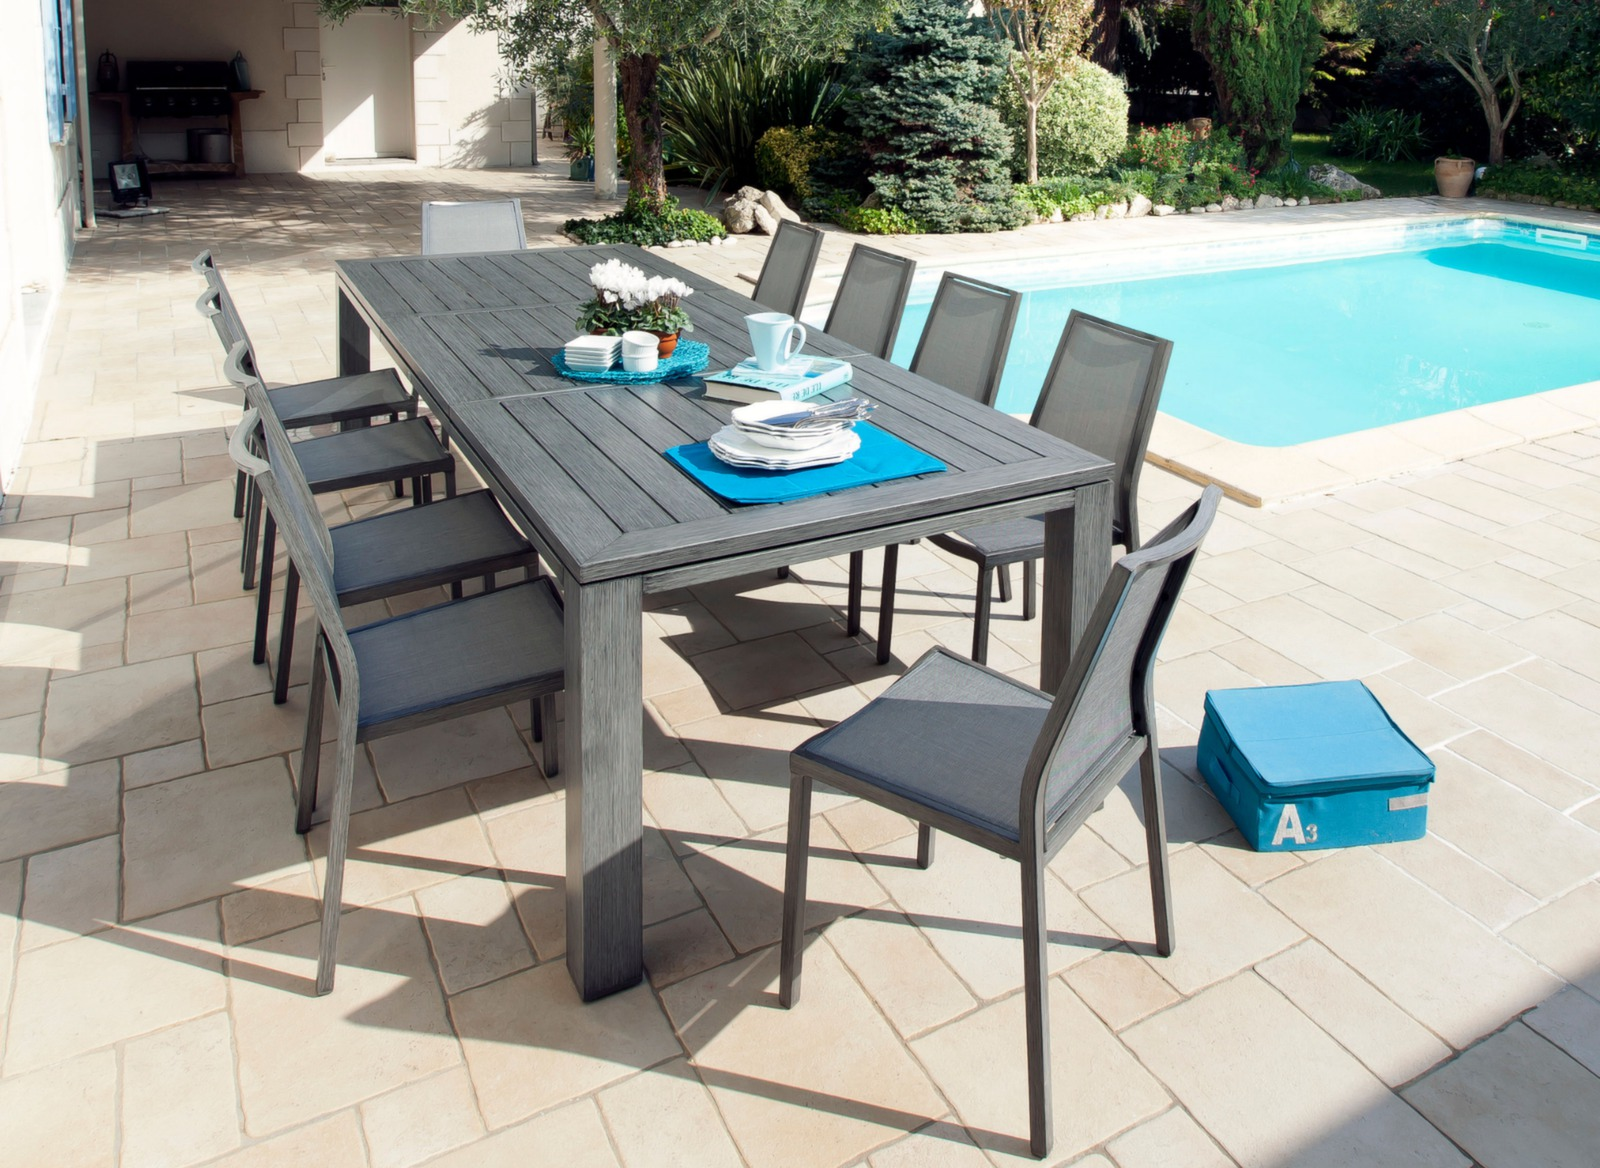 Salon jardin table latino 200 300 8 chaises ida oc o for Salon de jardin 10 personnes